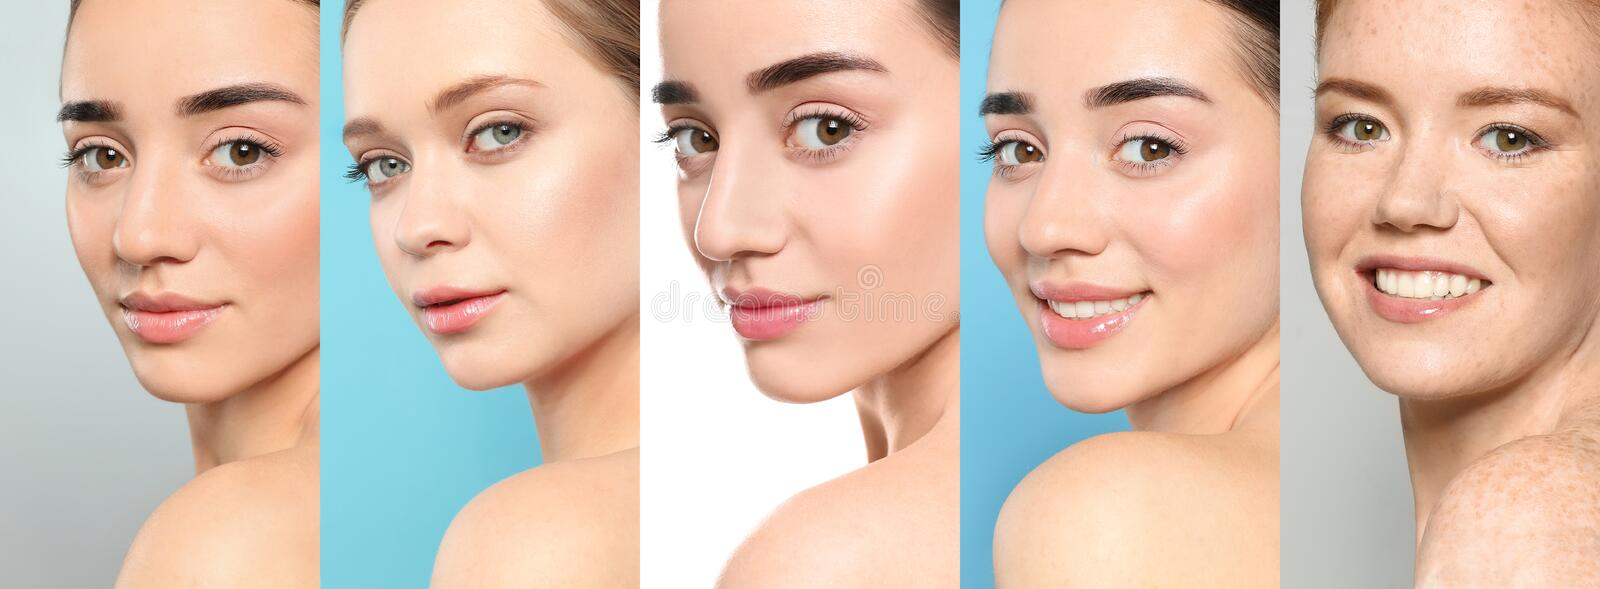 Collage of women with beautiful faces royalty free stock photo